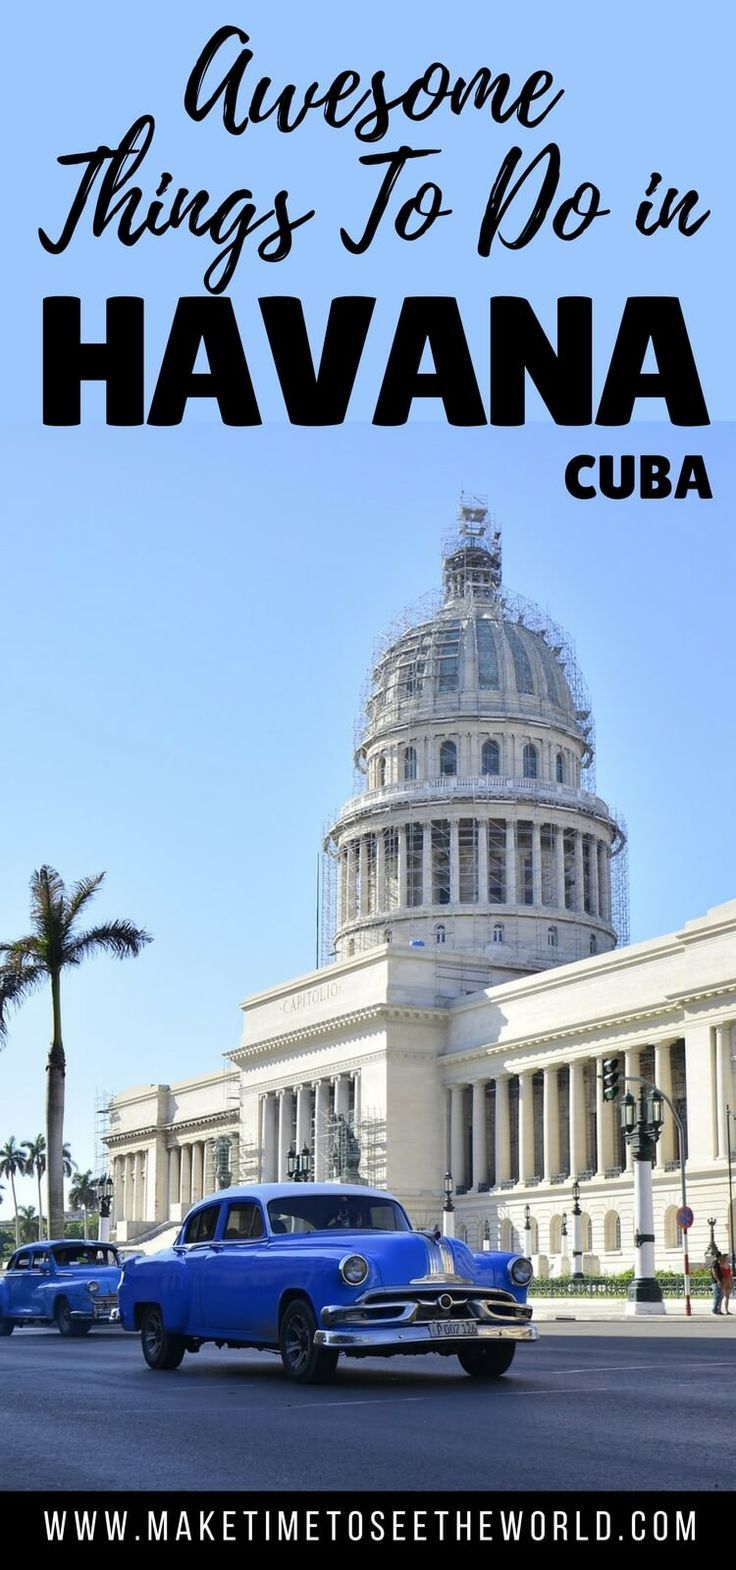 Wondering what to do in Havana? This guide has you covered with visitor info inc wifi, transport, cocktails, hotels and the Top Things To Do in Havana Cuba ******************************************************************************** Havana Cuba | Hava